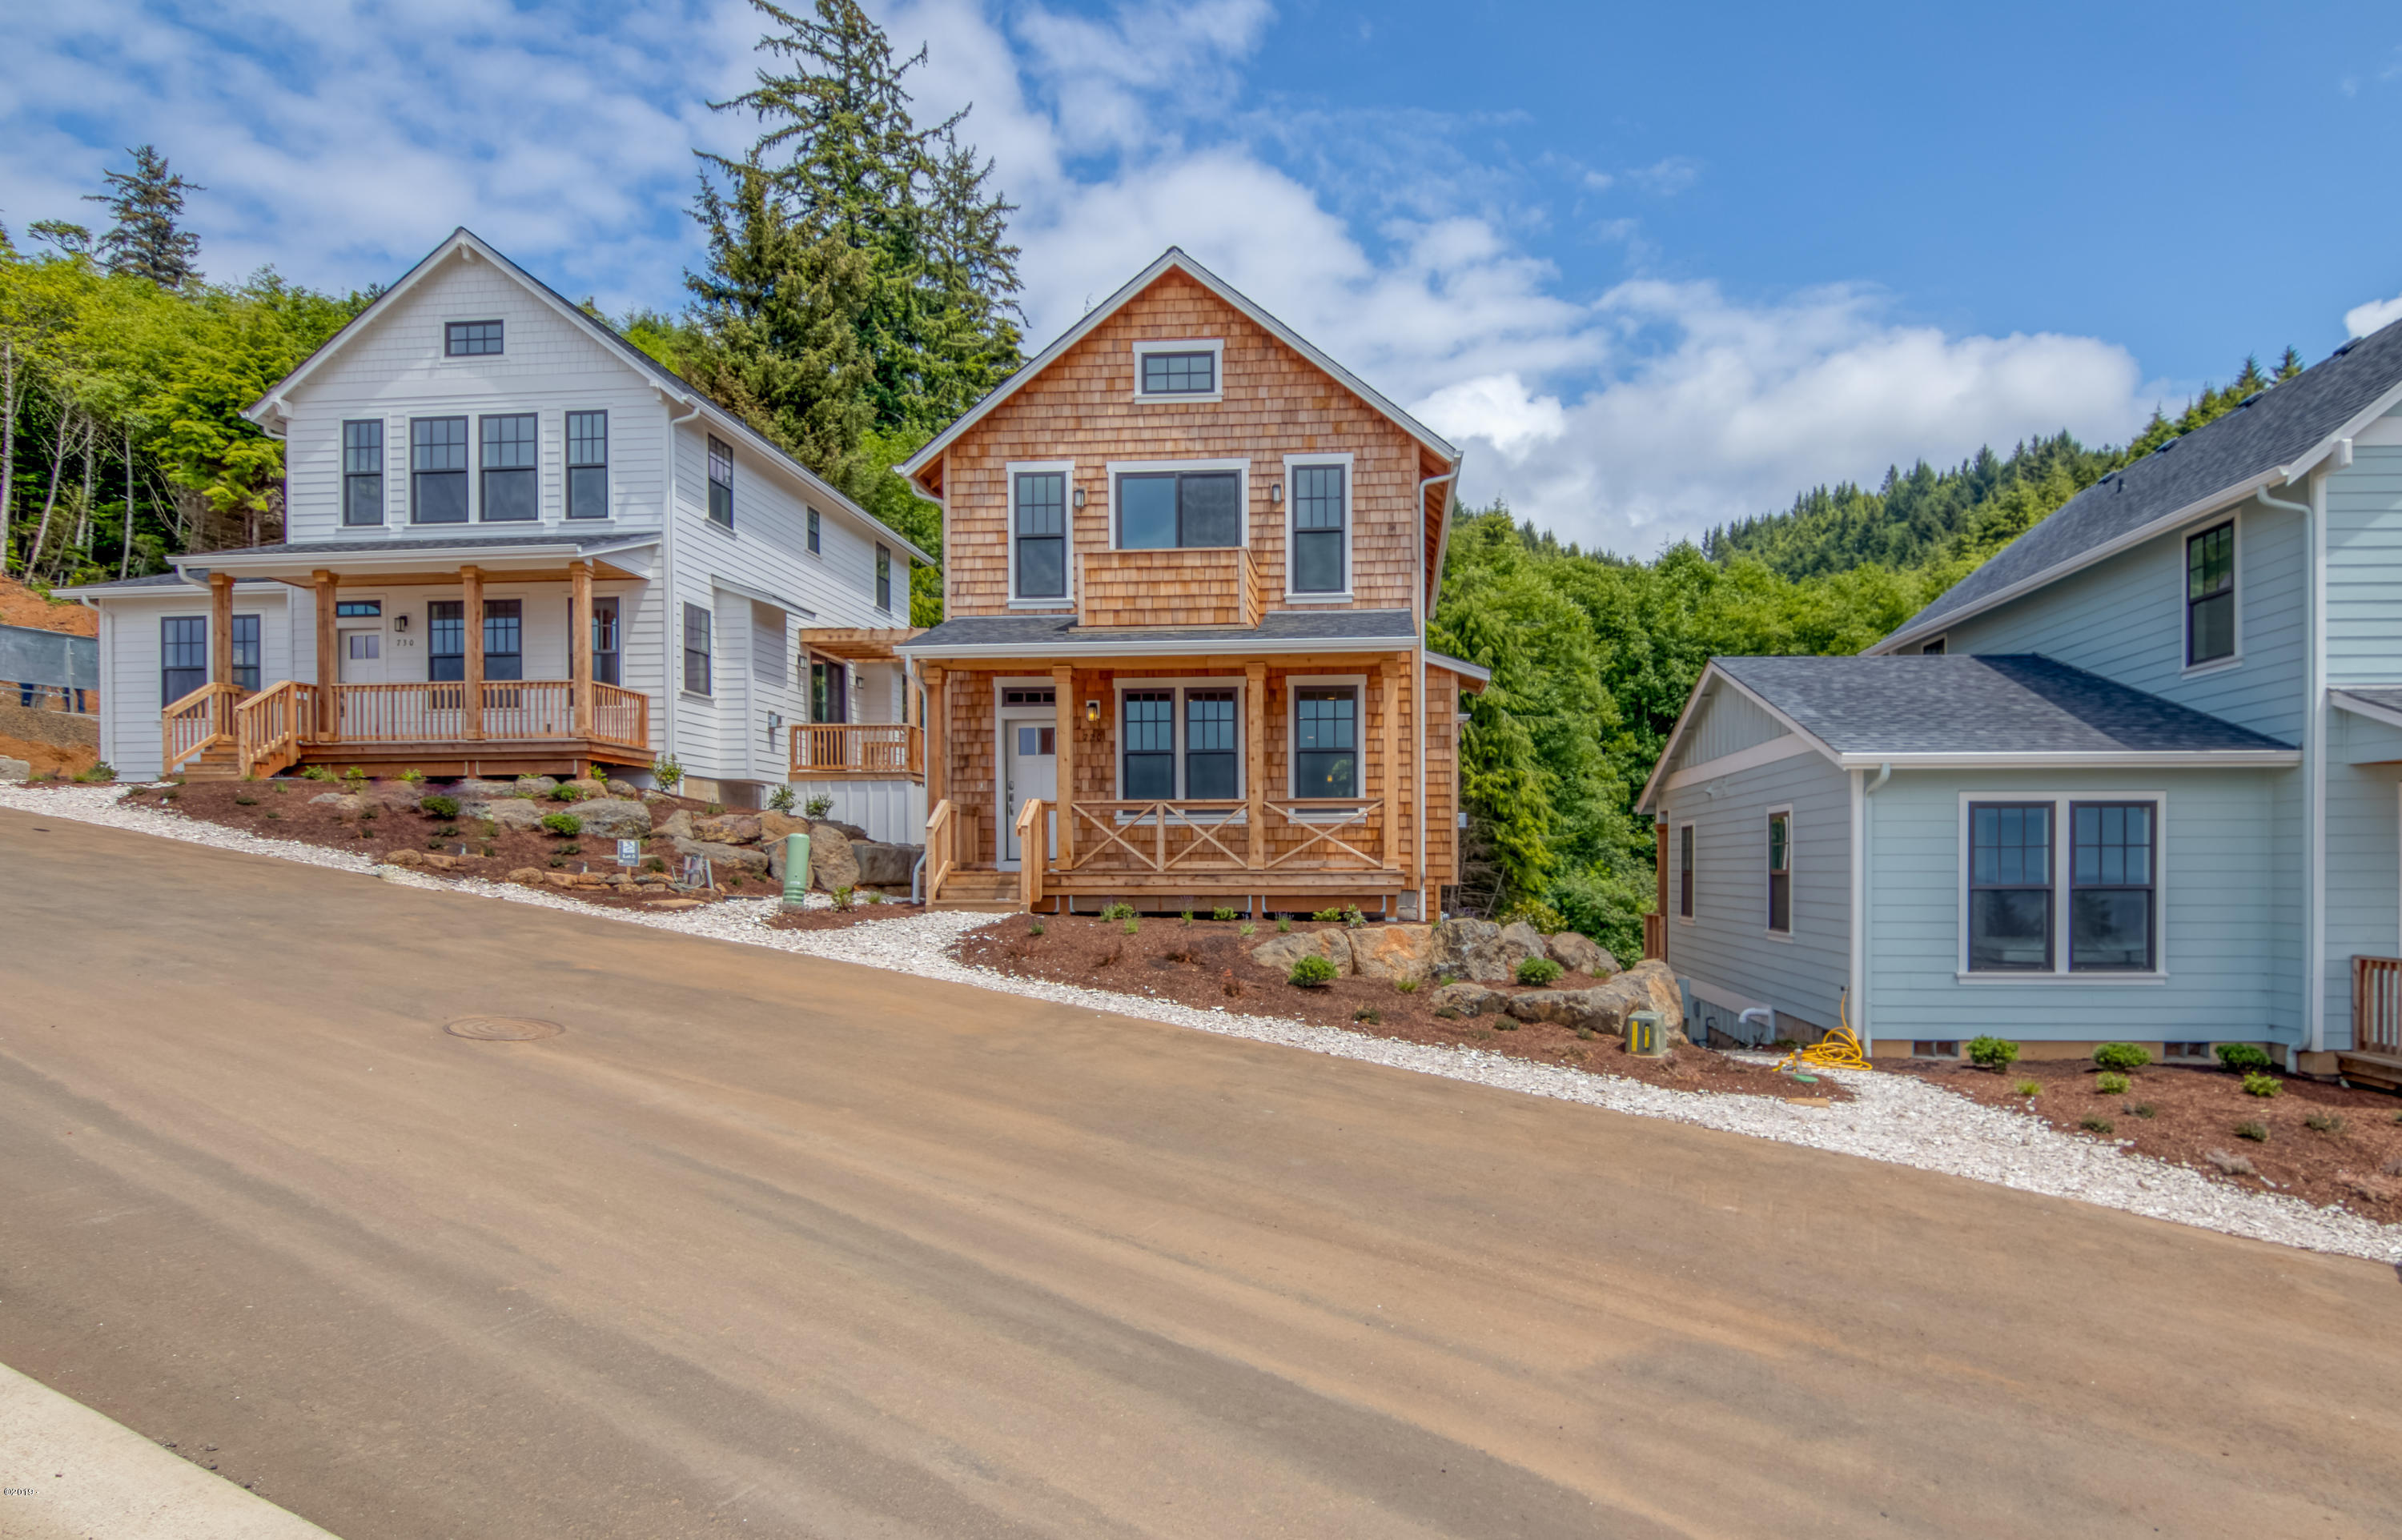 720 NE Lillian Ln, Depoe Bay, OR 97341 - Ocean View Home